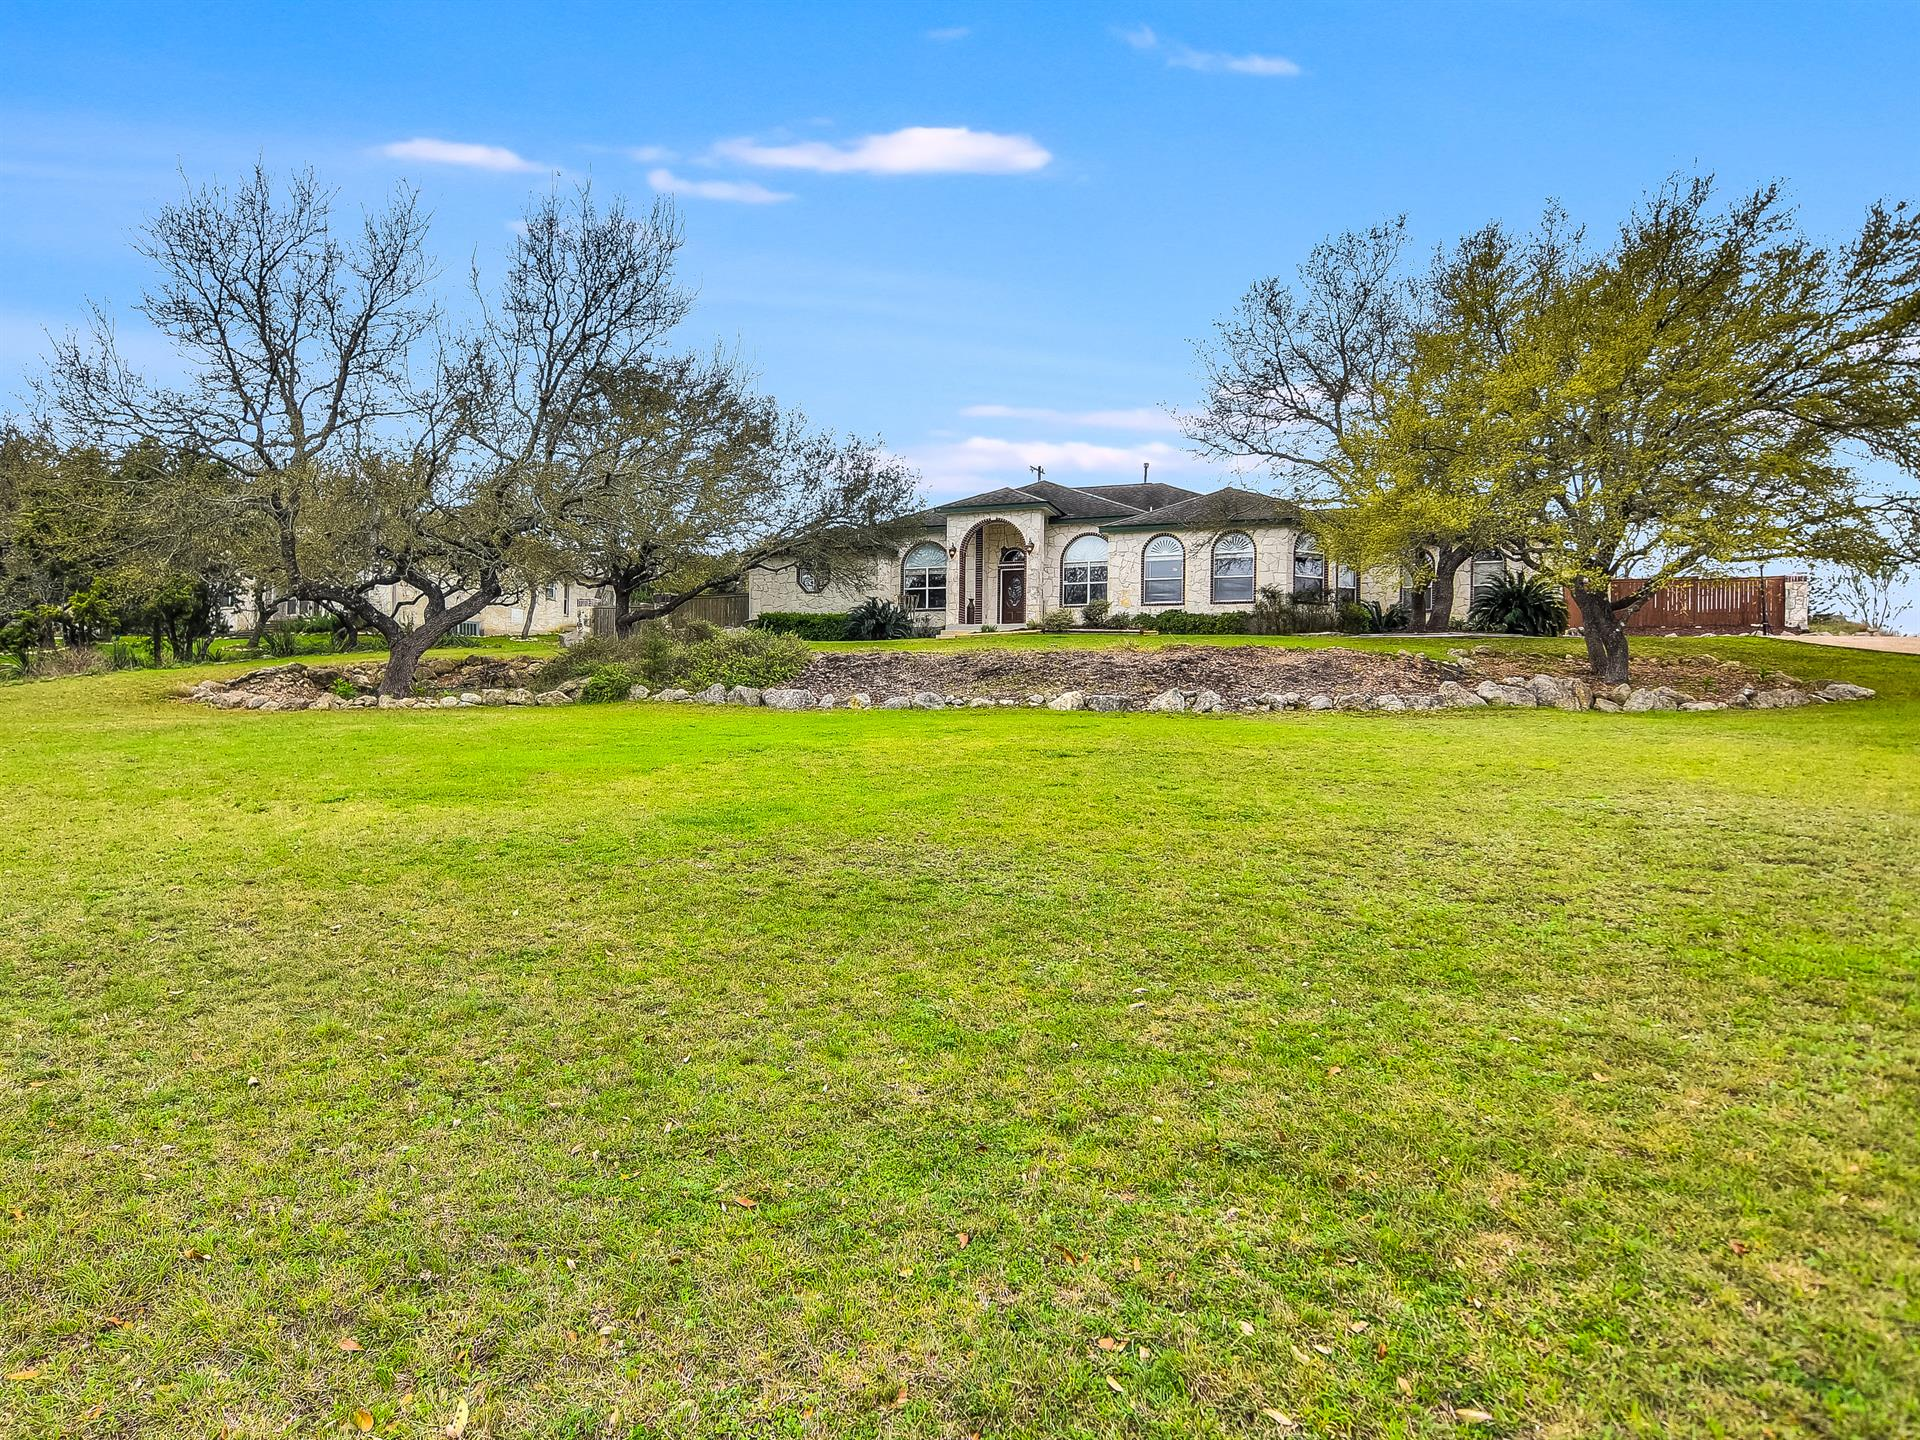 Additional photo for property listing at 27517 Boerne Cave 27517 Boerne Cave Boerne, Texas 78006 United States